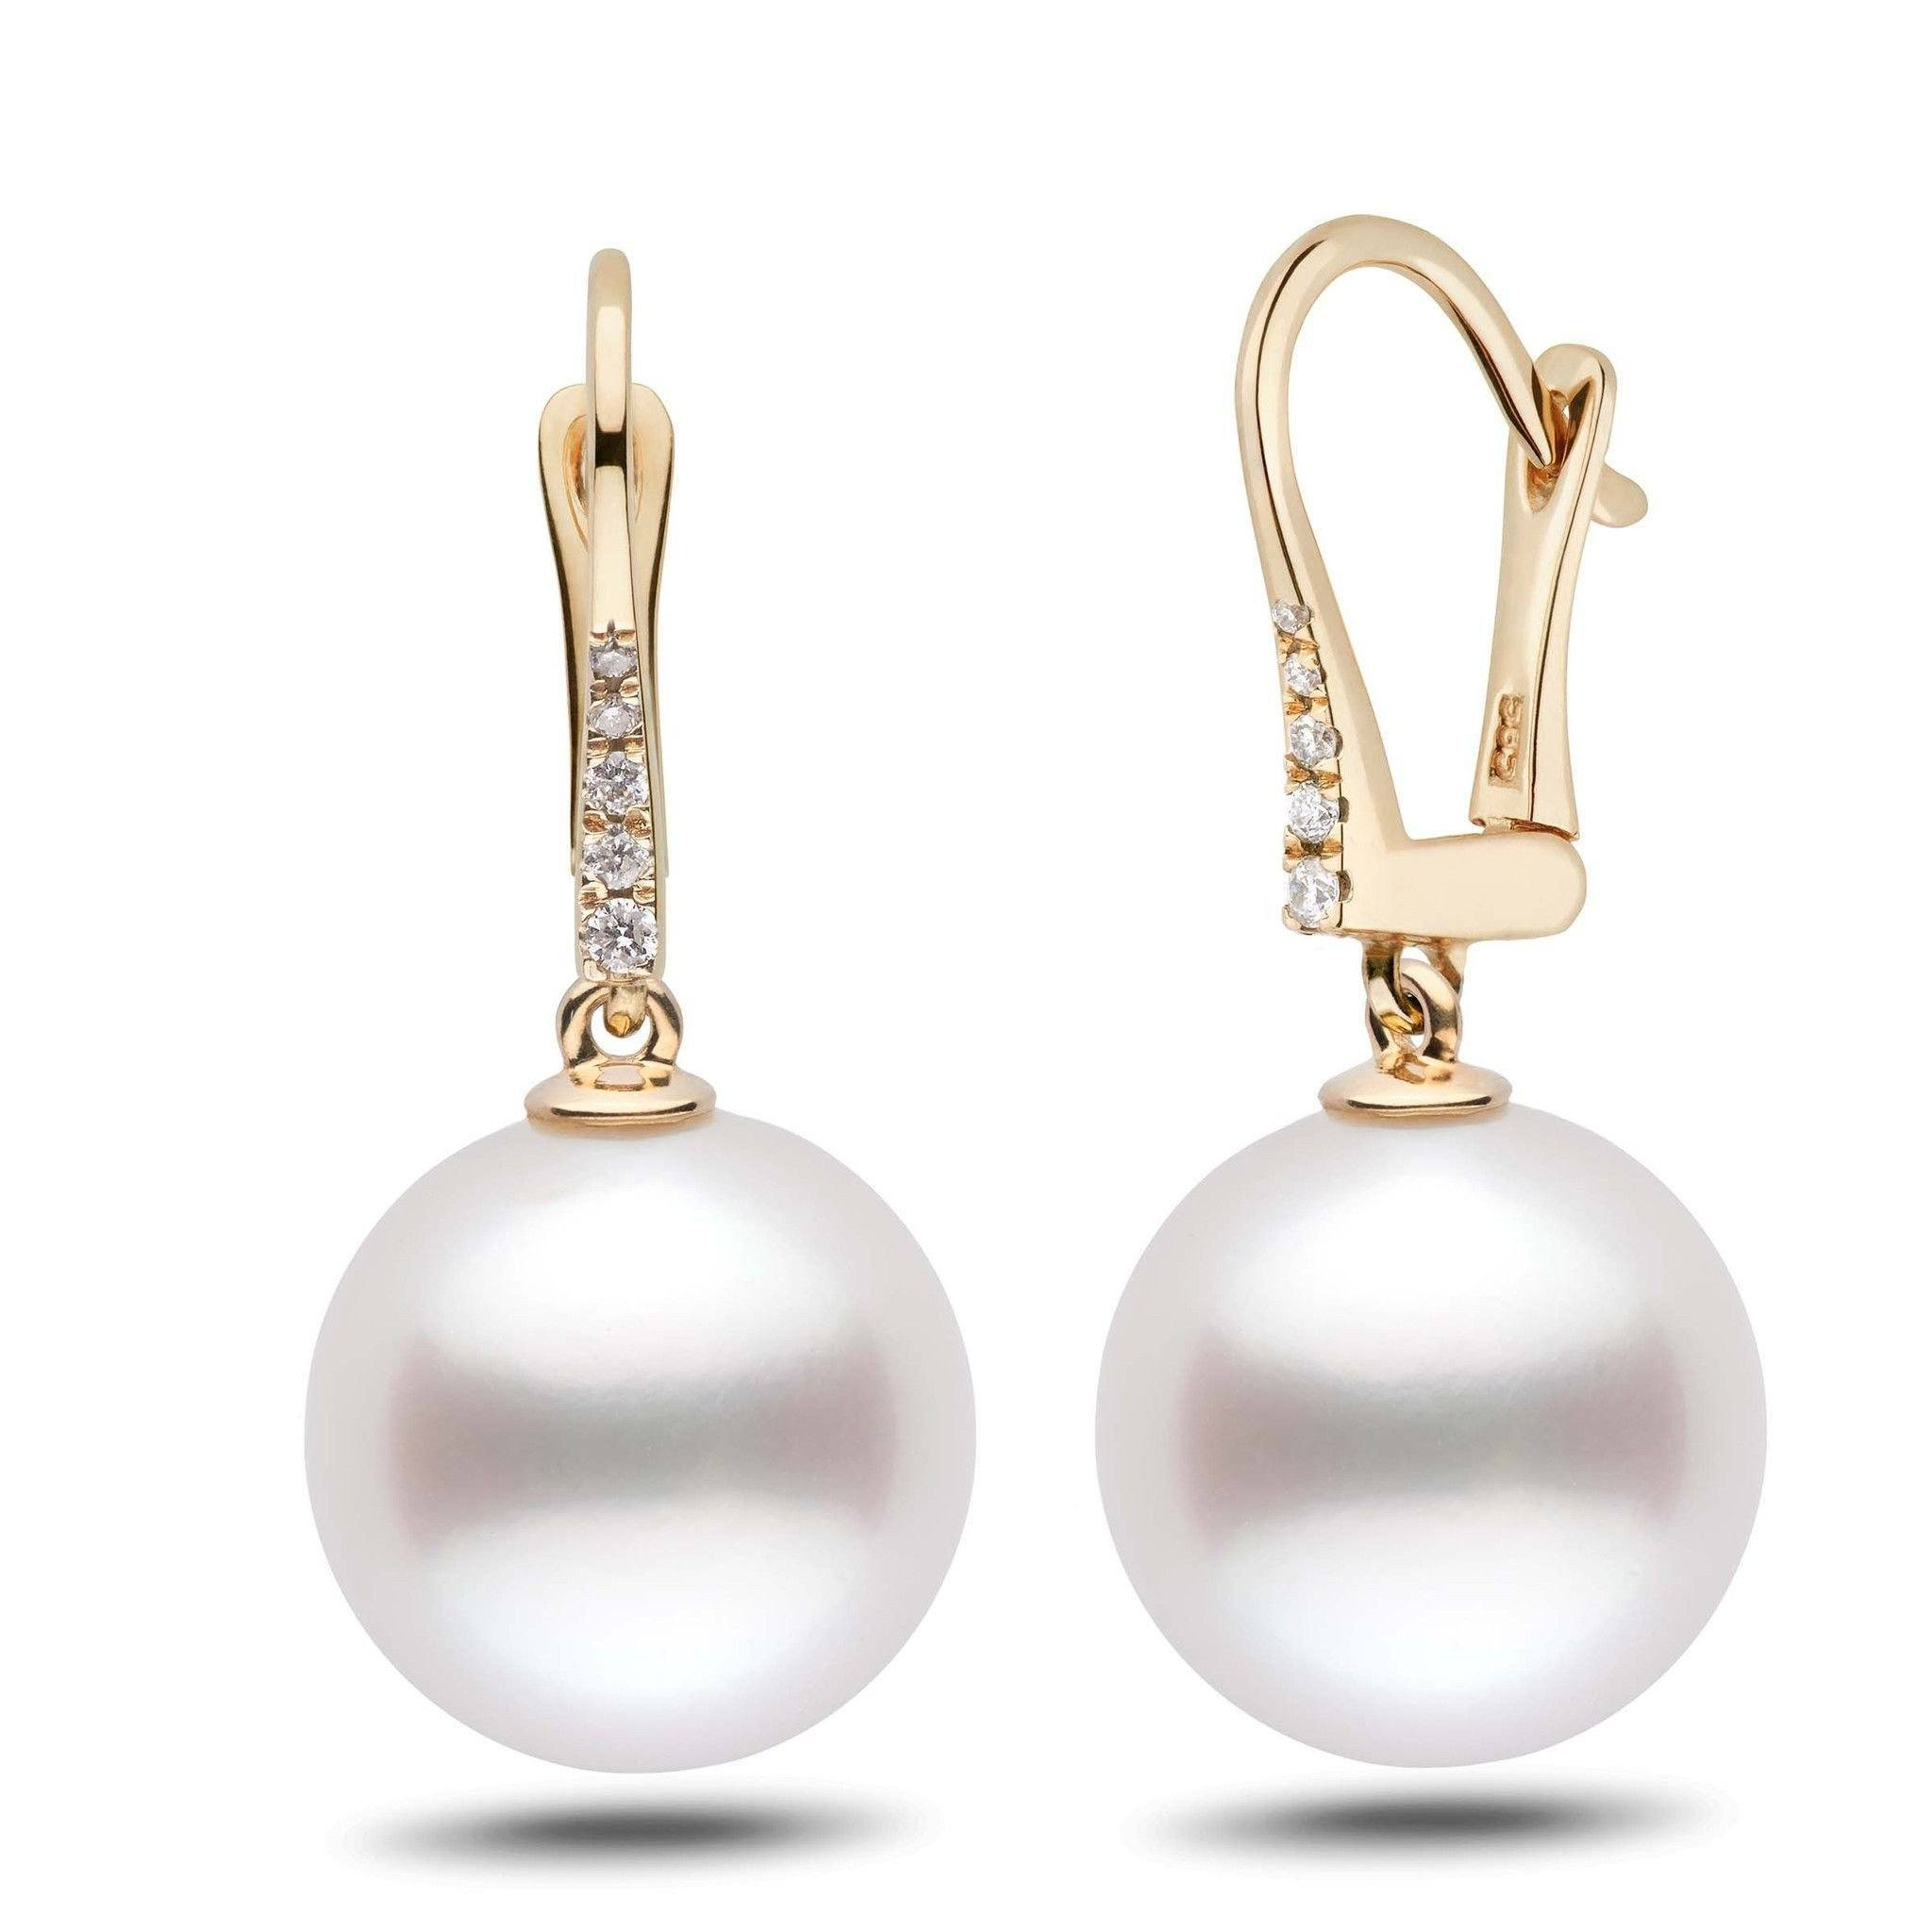 Allure Collection White South Sea 13.0-14.0 mm Pearl & Diamond Dangle Earrings